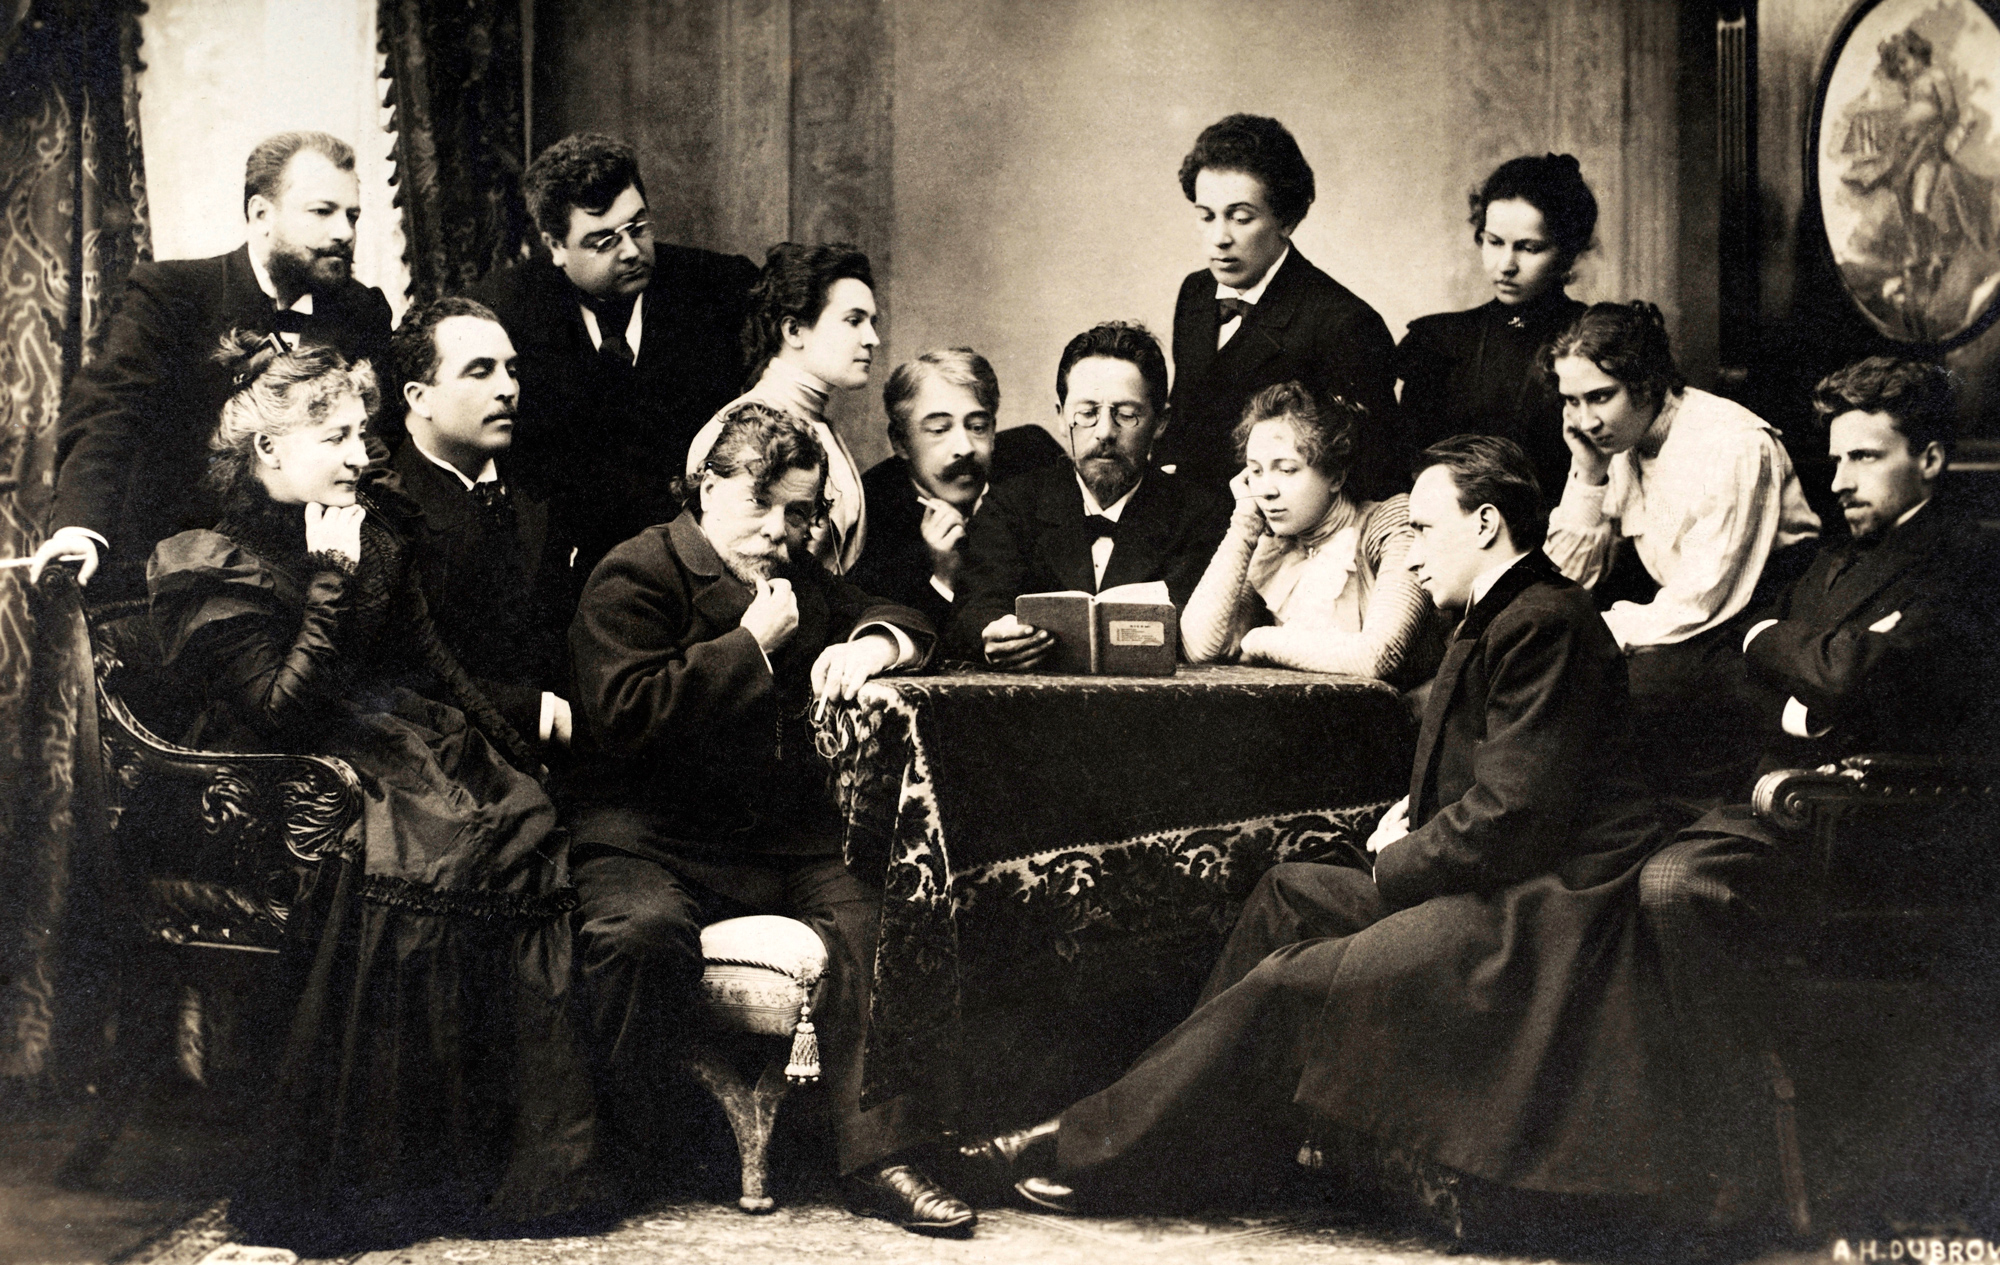 Photograph of Chekov, Stanislavsky and the Moscow Art Theatre group, 1900